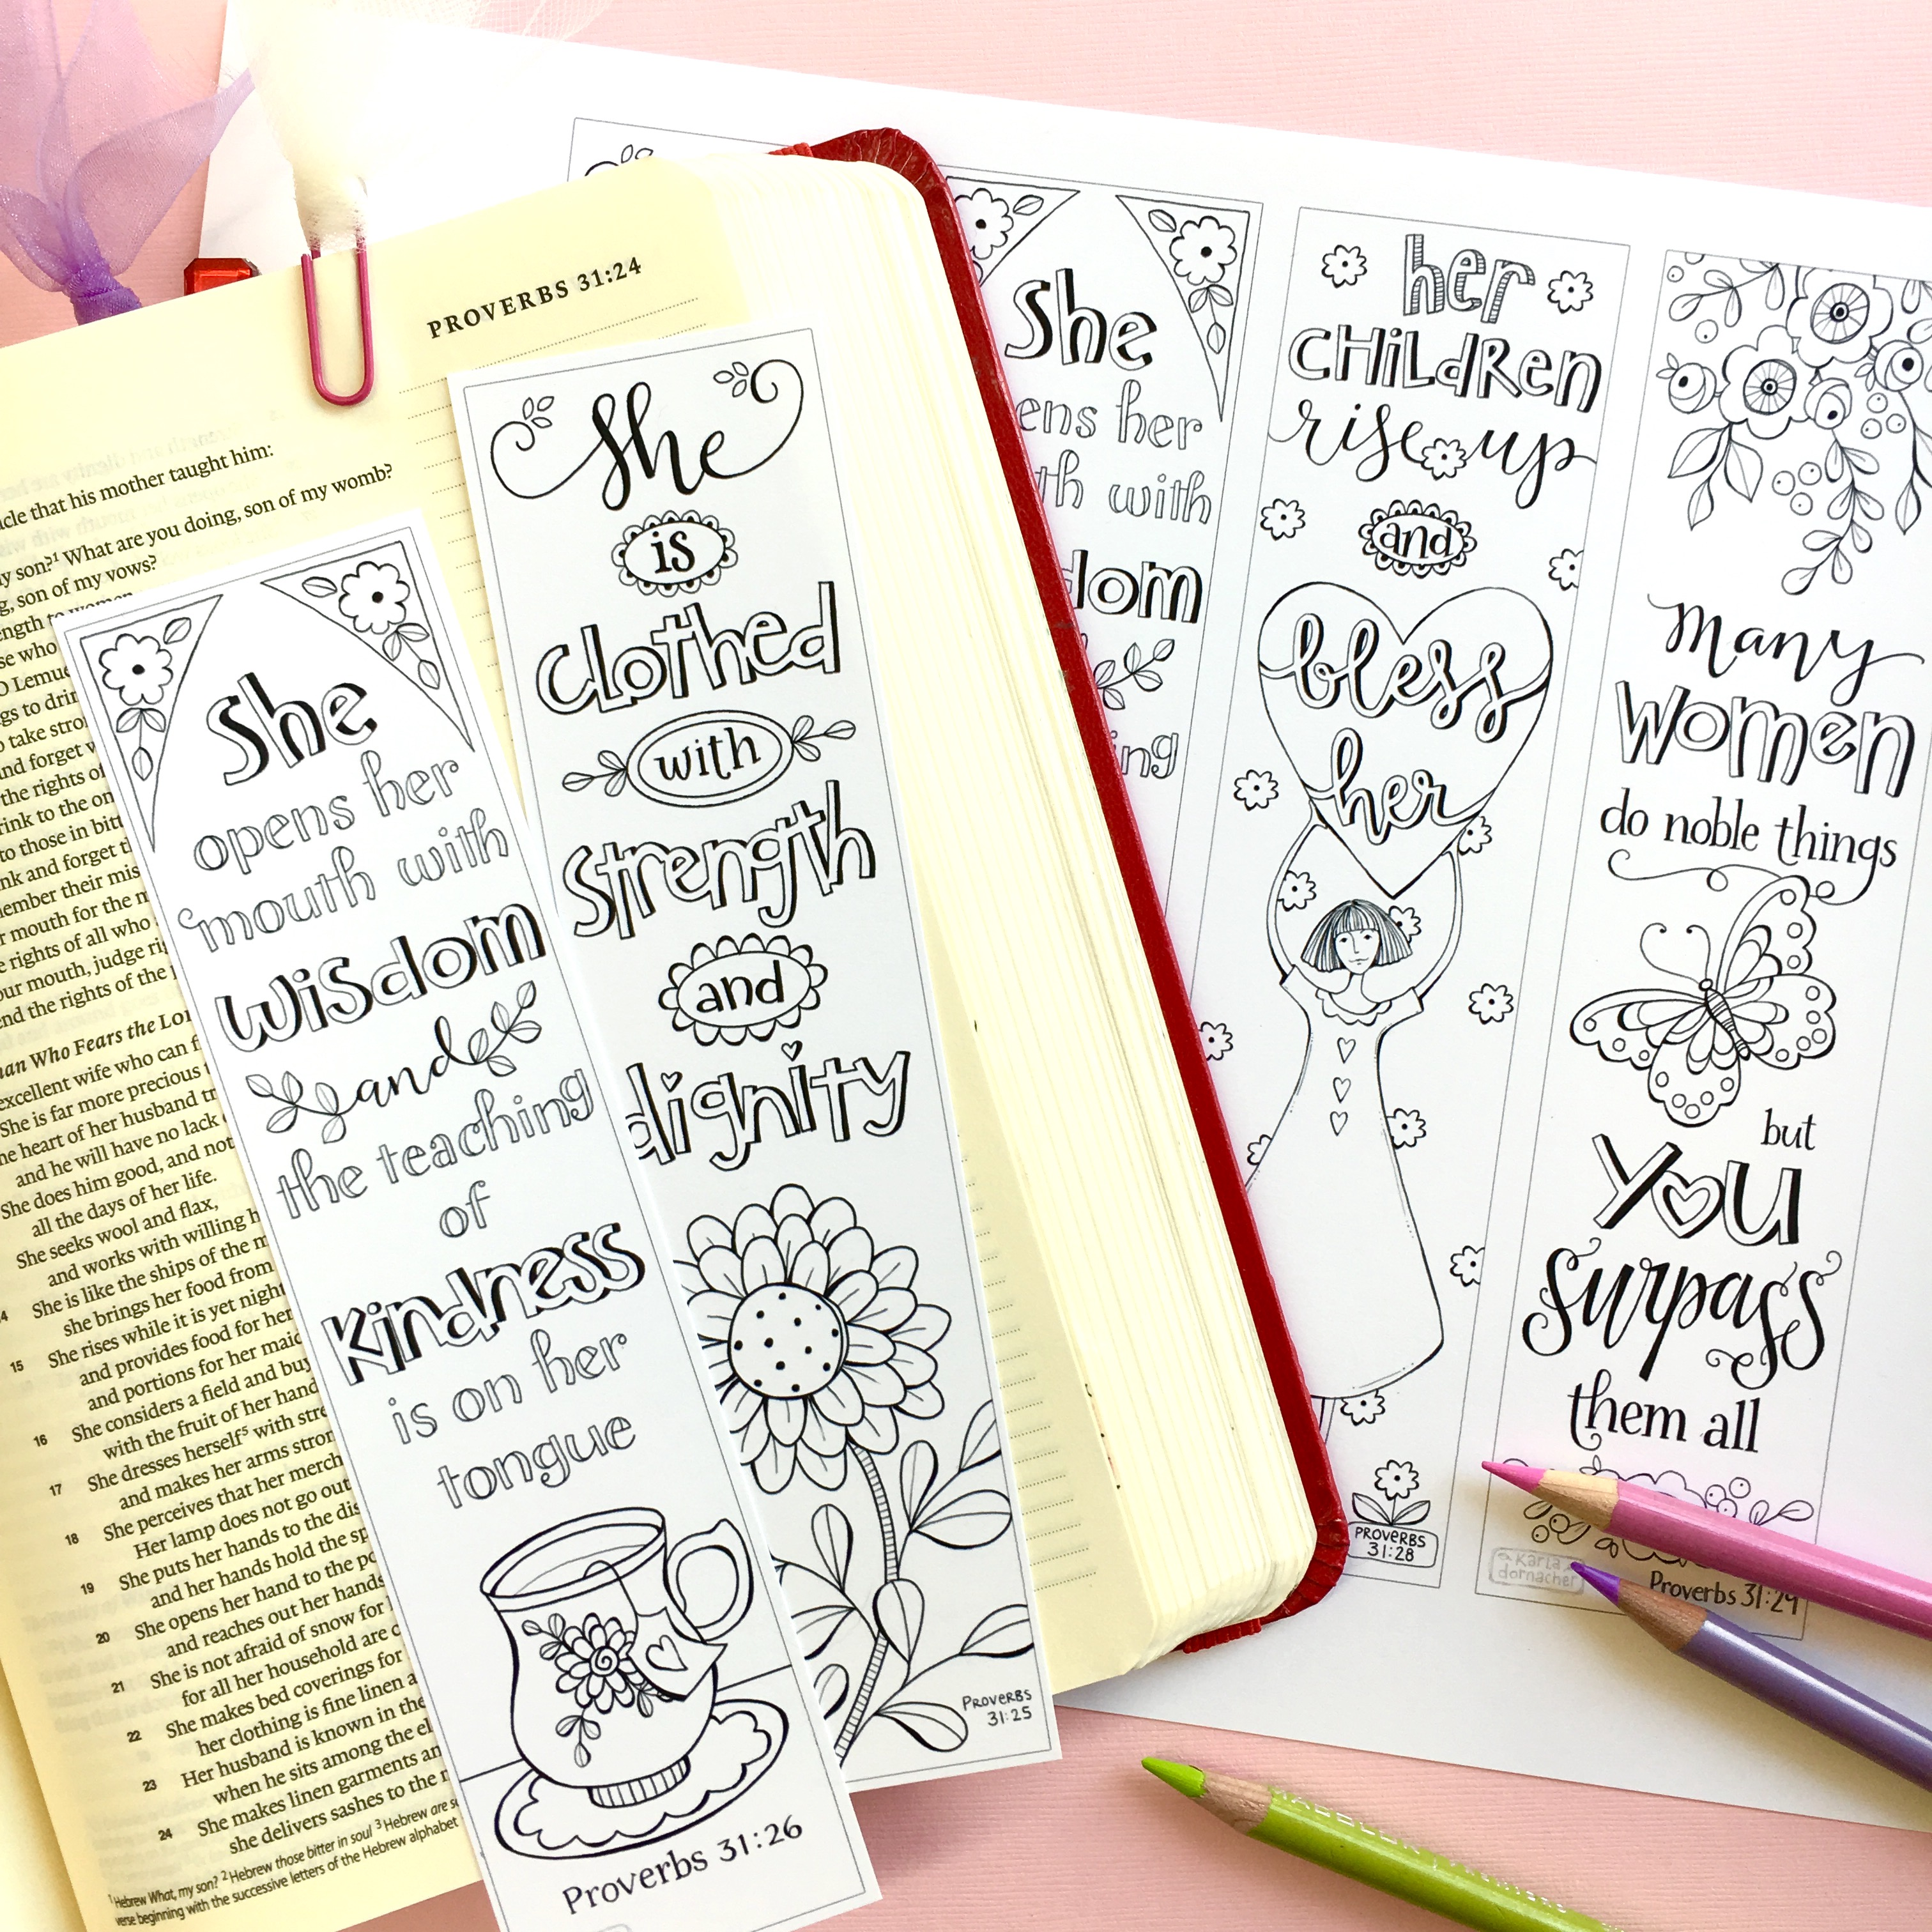 Proverbs 31 Godly Woman Mothers Day Color Your Own Bible ...